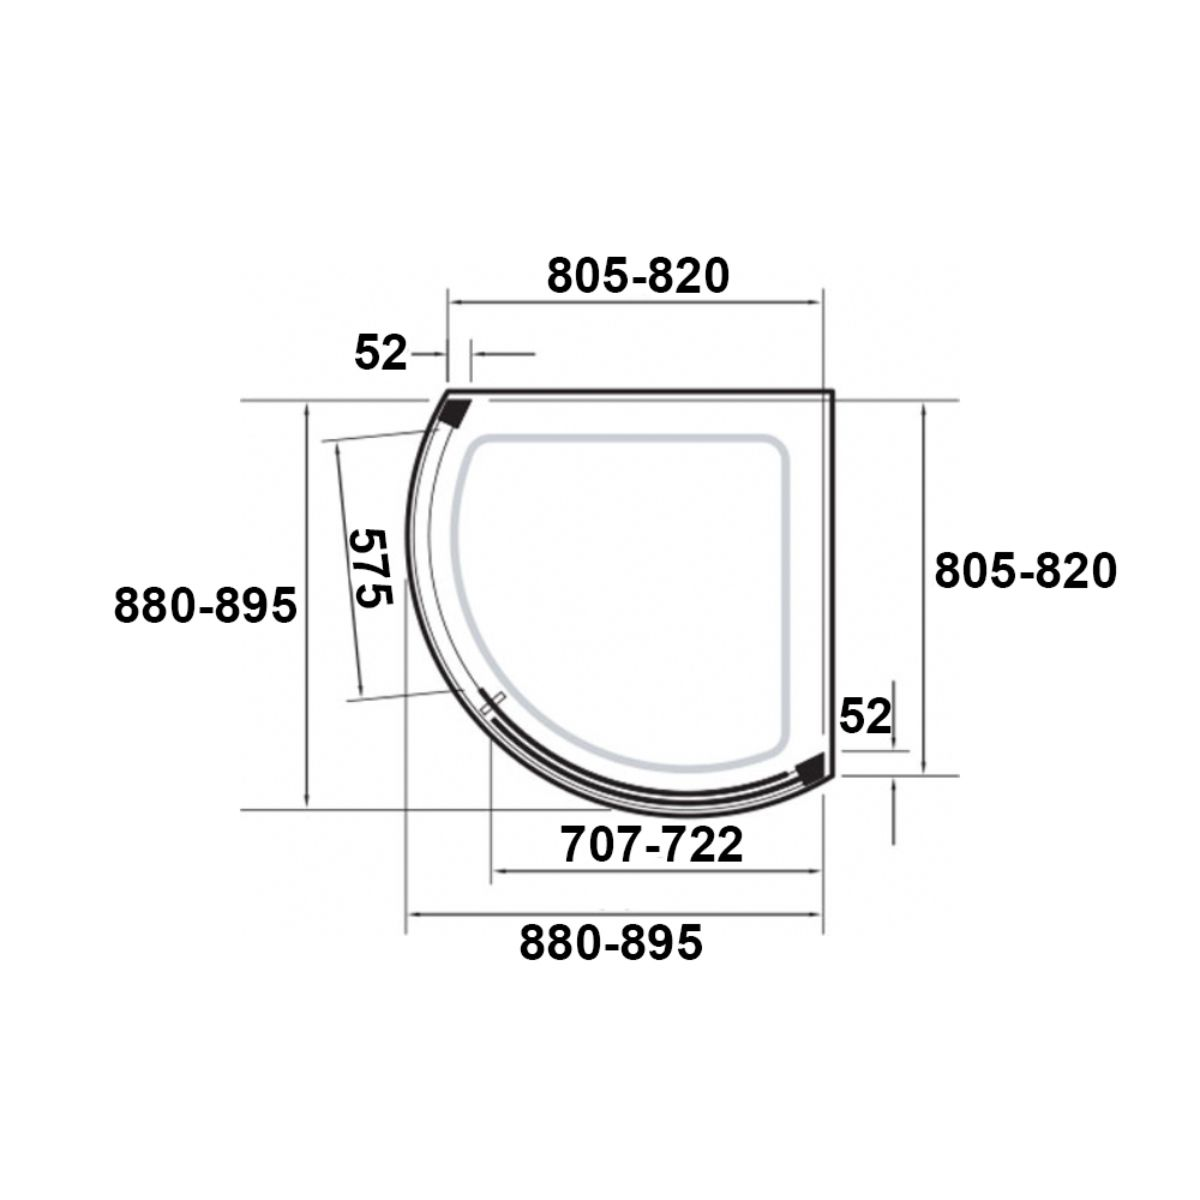 Kudos Original Curved Sliding Shower Enclosure Side Access 910 x 910 with Concept 2 Shower Tray Dimensions